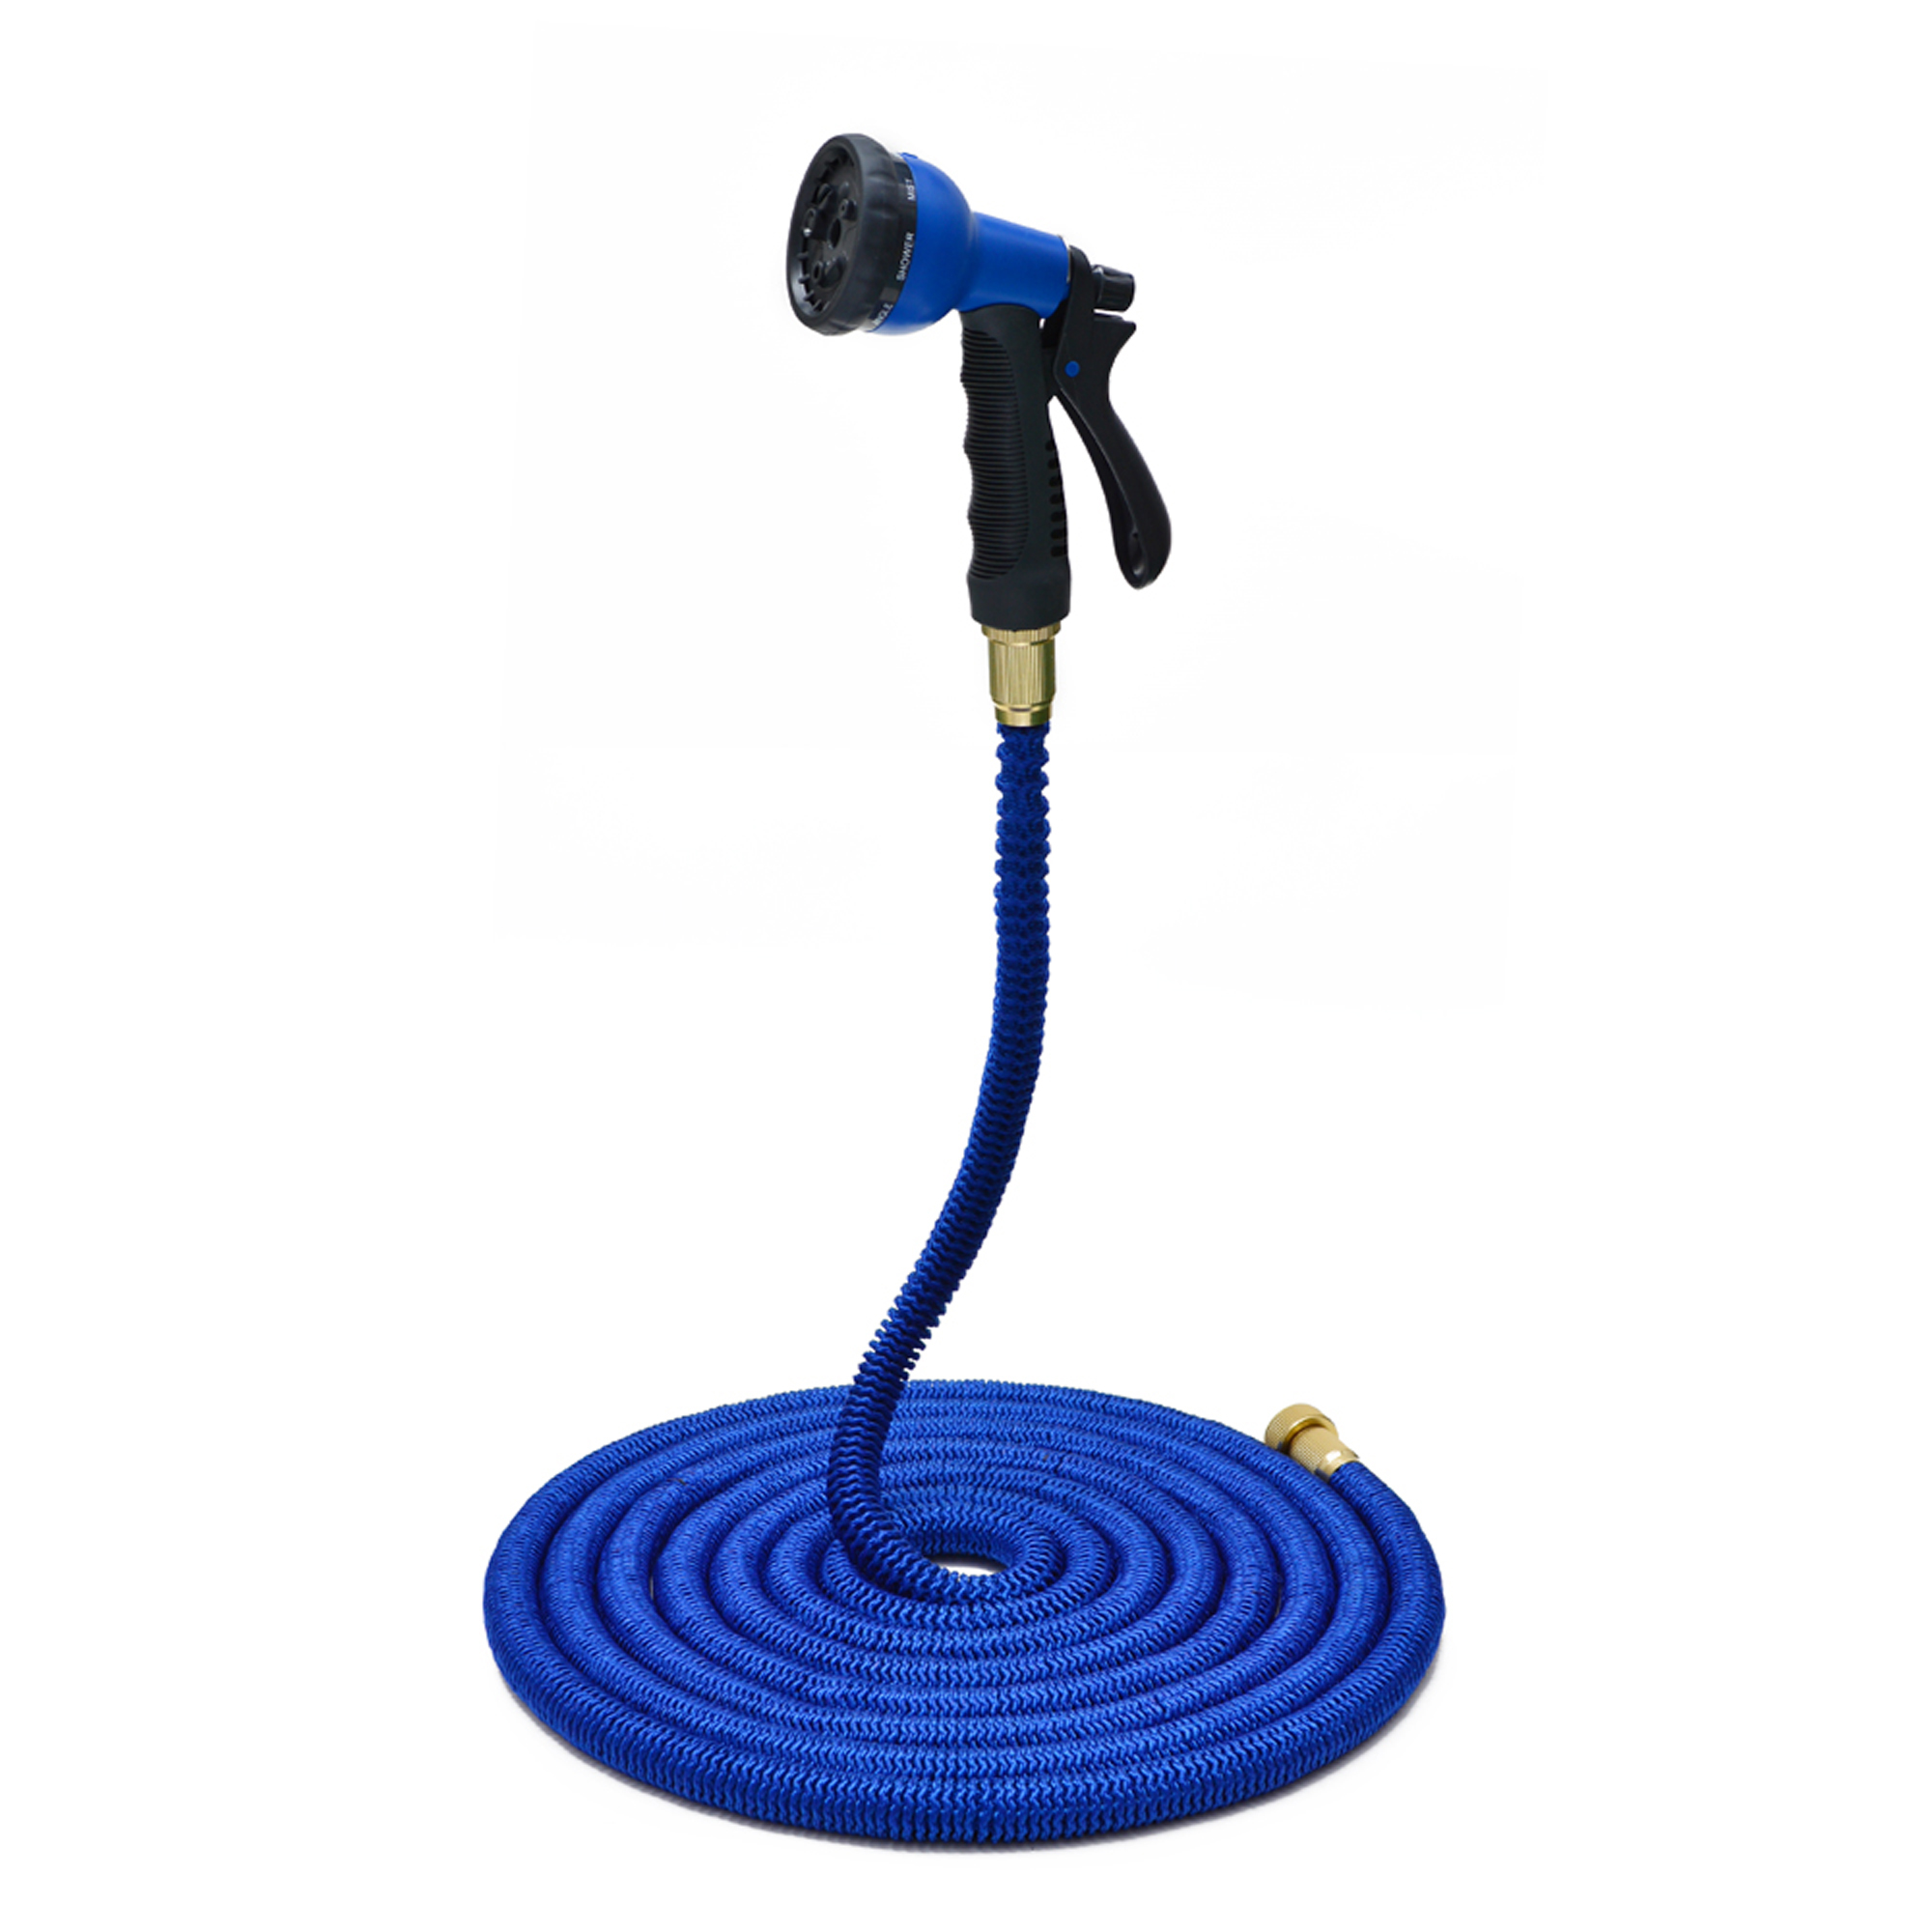 Newest 50 Feet Expanding Heavy Duty Expandable Strongest Garden Hose and 8-pattern Spray... by